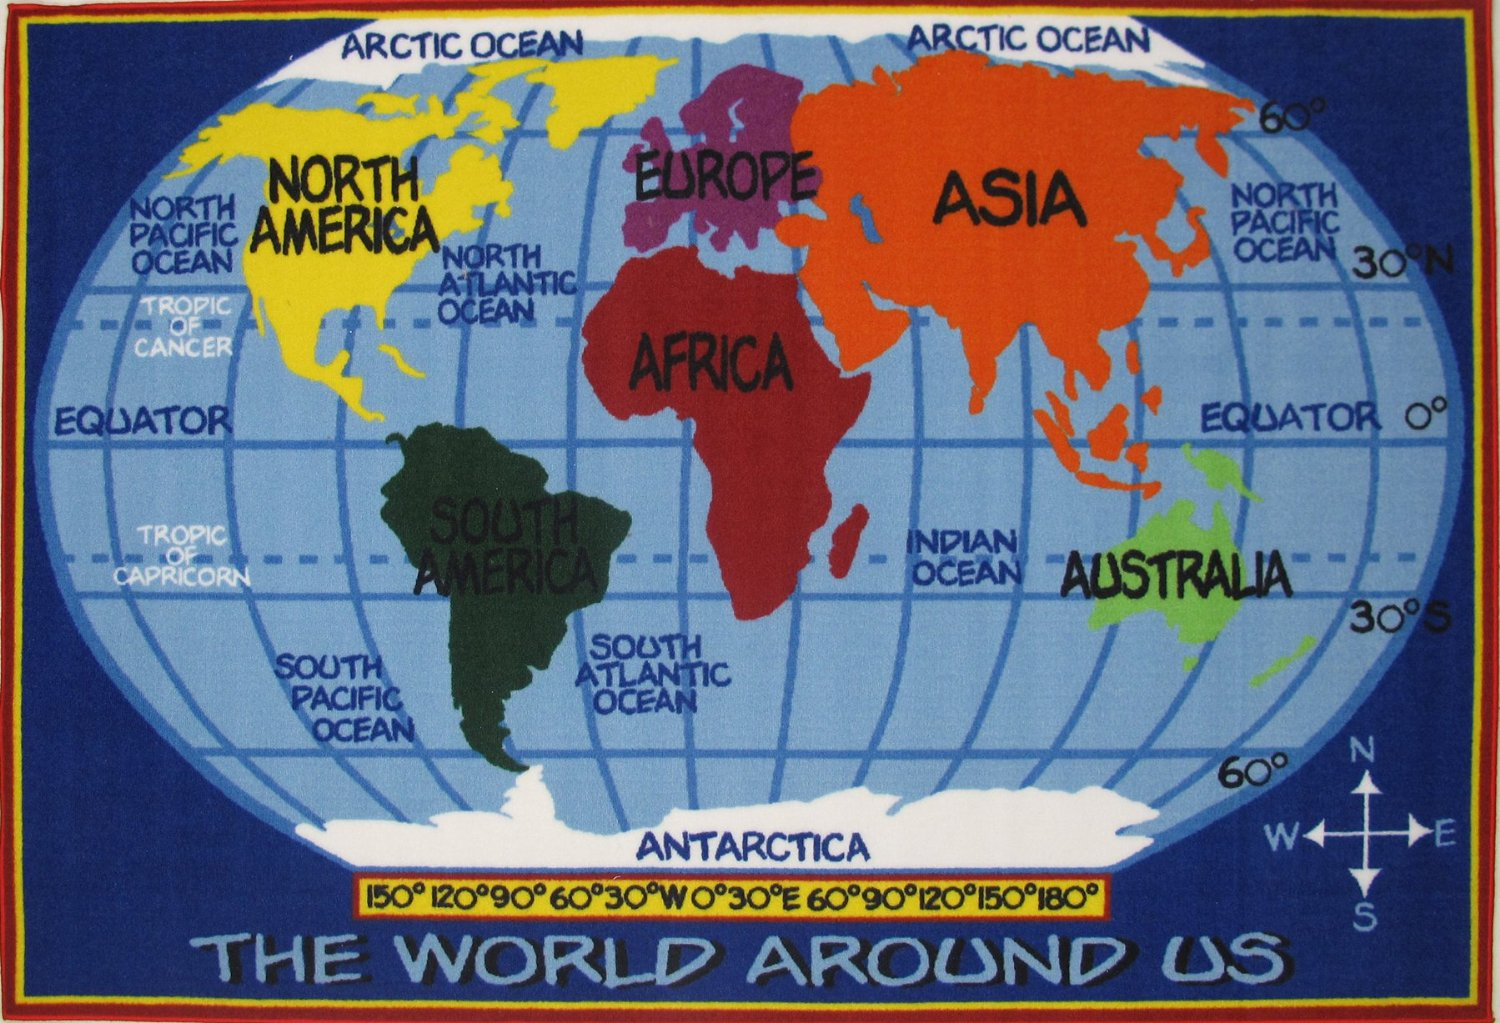 Kid friendly world map googlesagy map child friendly blank world map gumiabroncs Choice Image